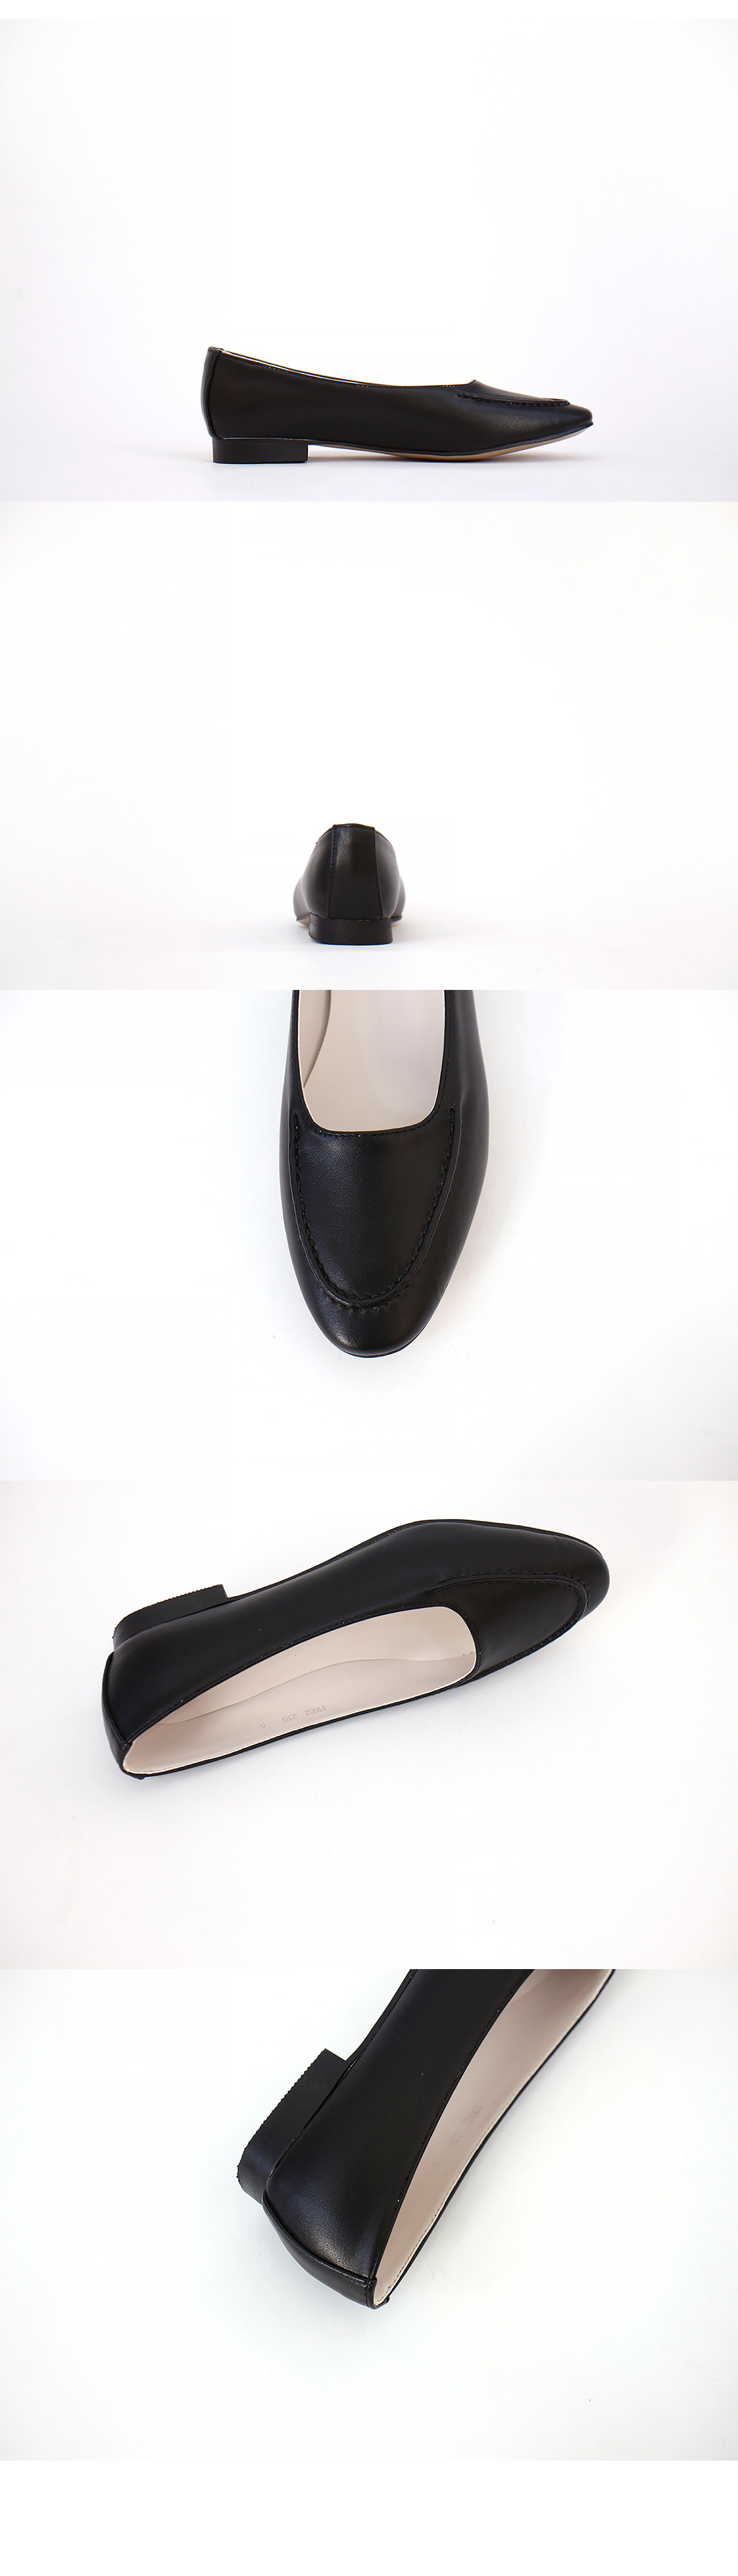 Round nose stitched flat shoes